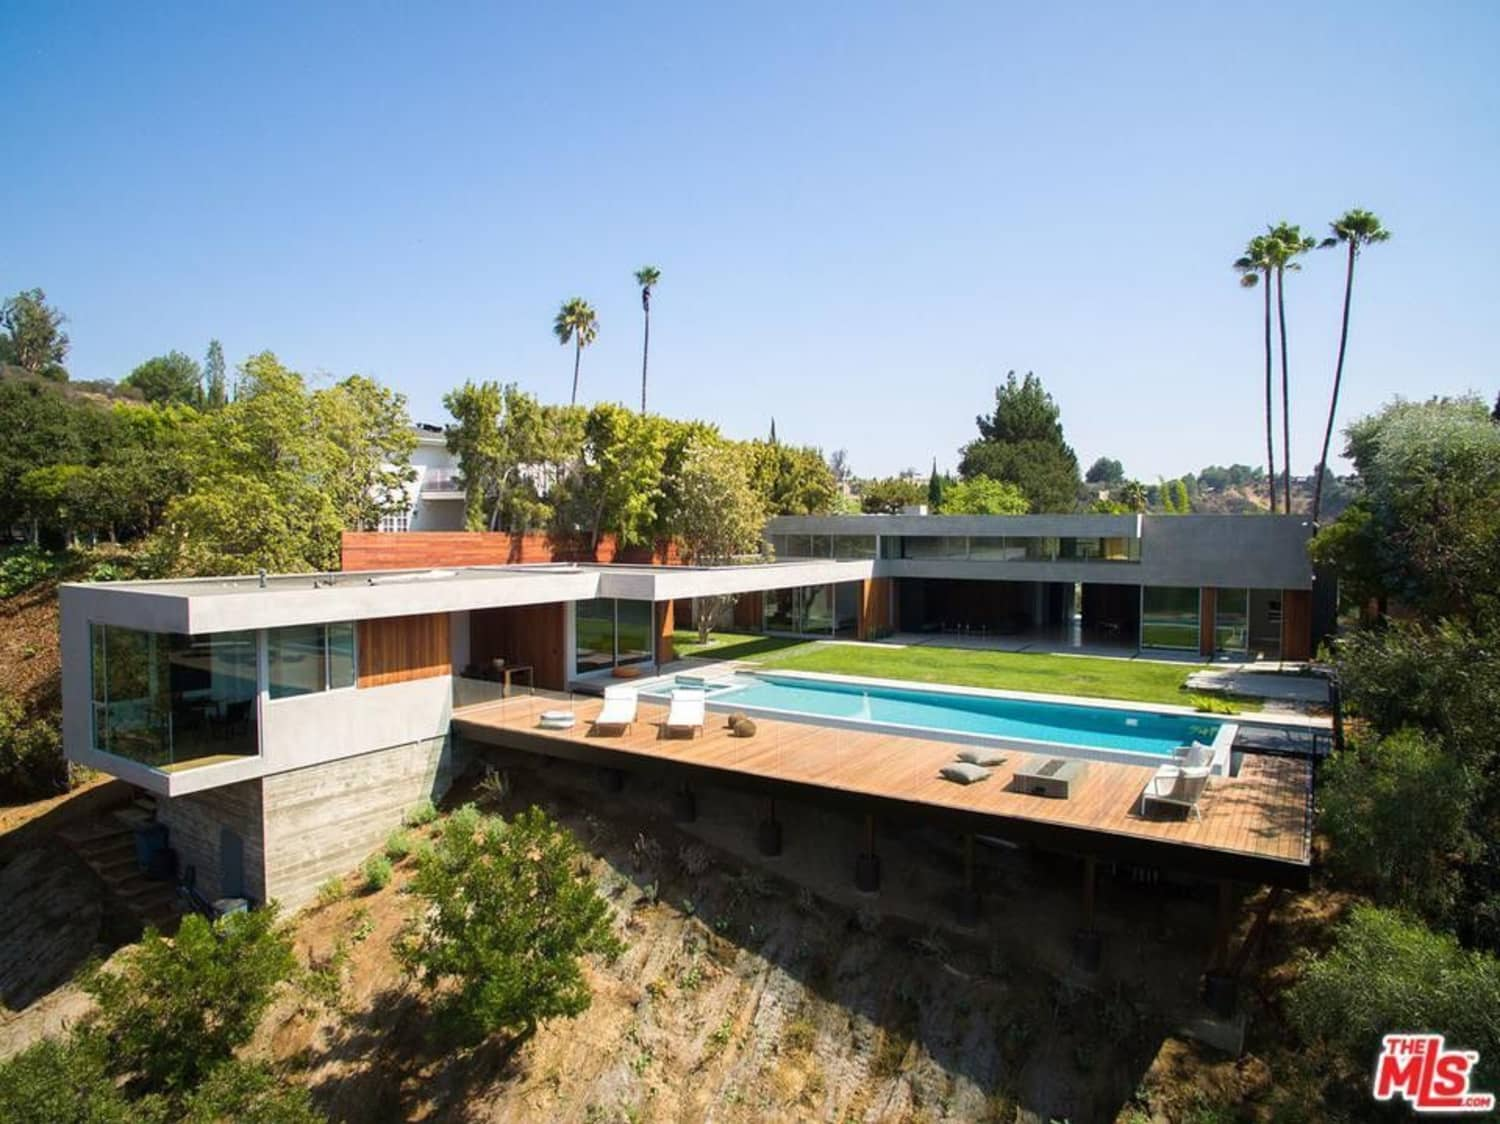 Someone's a 'Sucker' for Nick Jonas' Beverly Hills Bachelor Pad